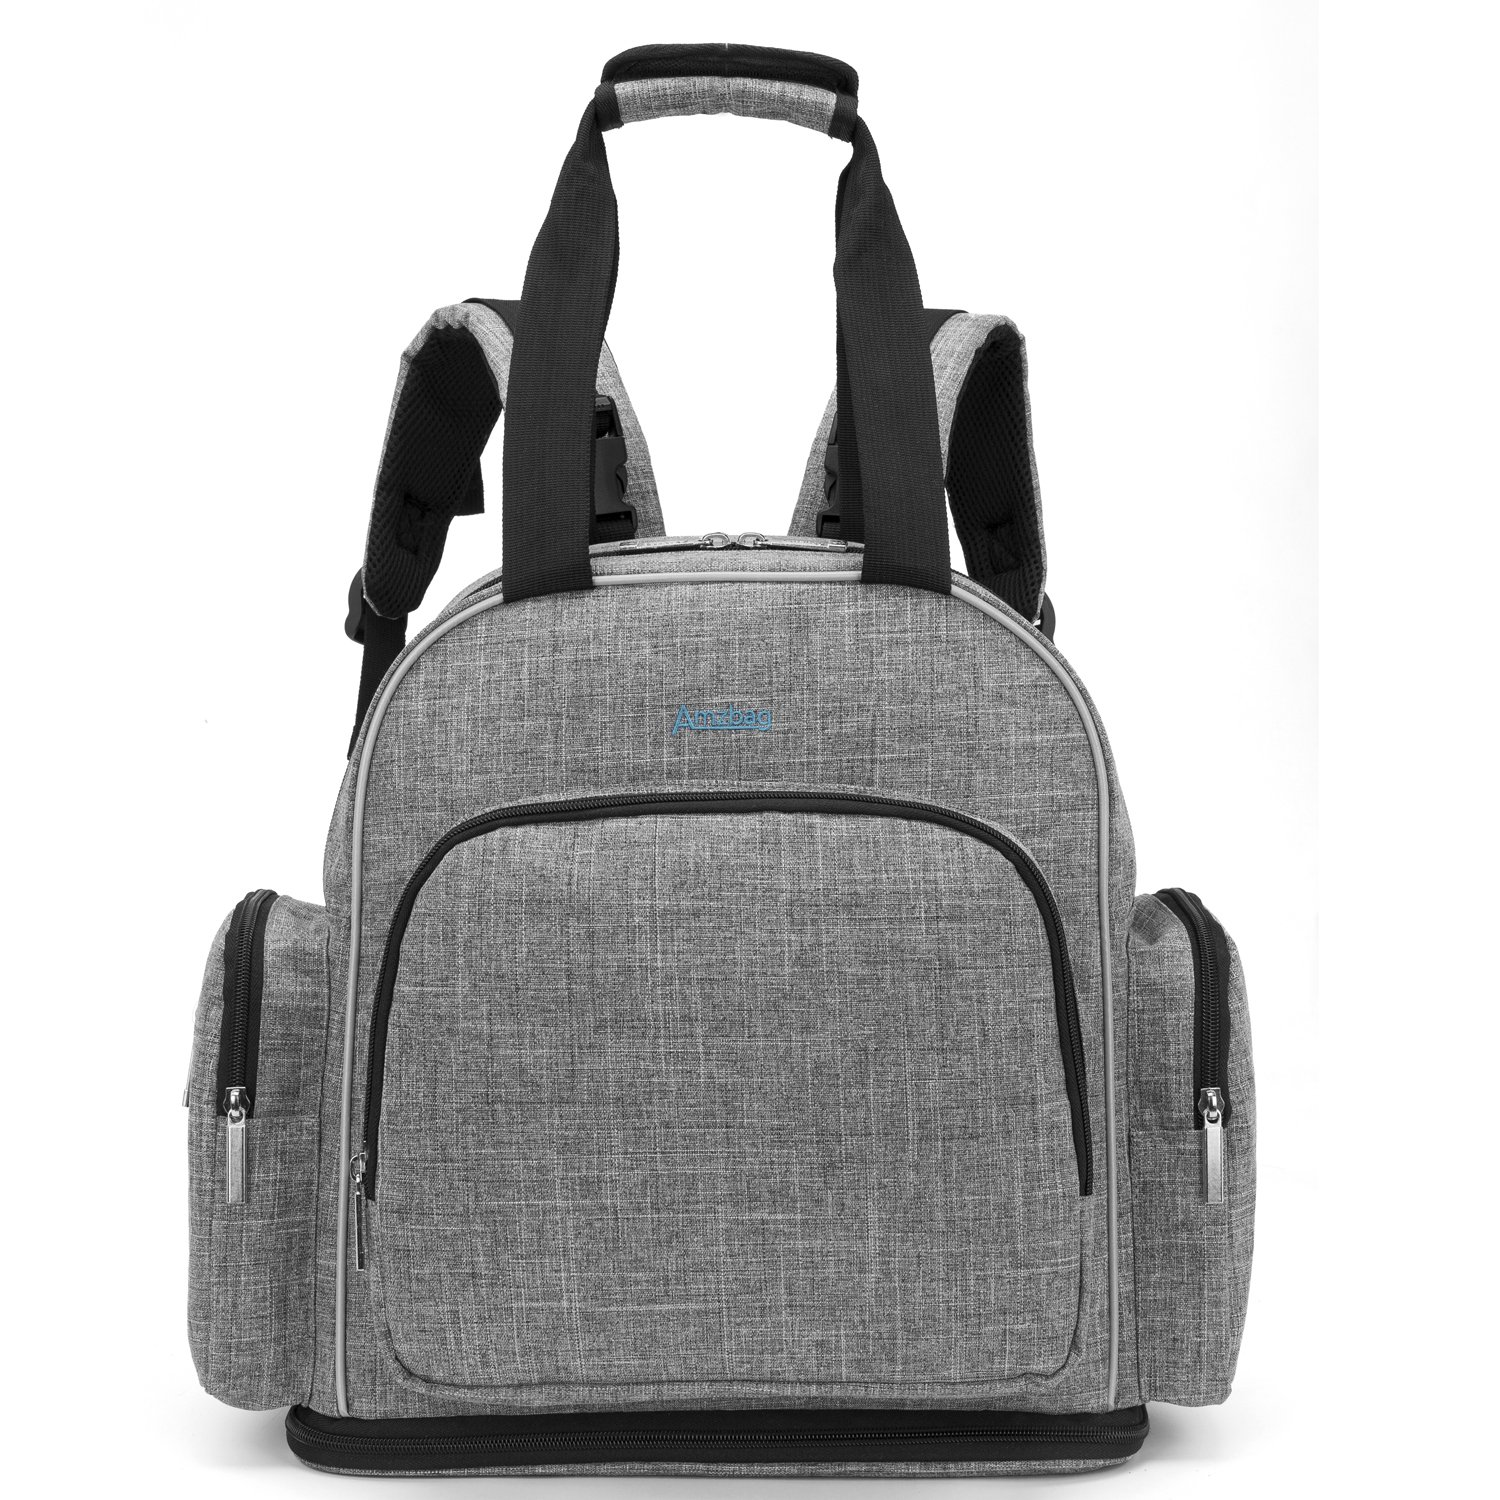 Amzbag Baby Diaper Bag Backpack Water-resistant Extensible Baby Tote Bag Unisex Diaper Handbag With Insulated Pockets Include Changing Pad/Insulated Sleeve For Mum/Dad (M-Size, Grey)